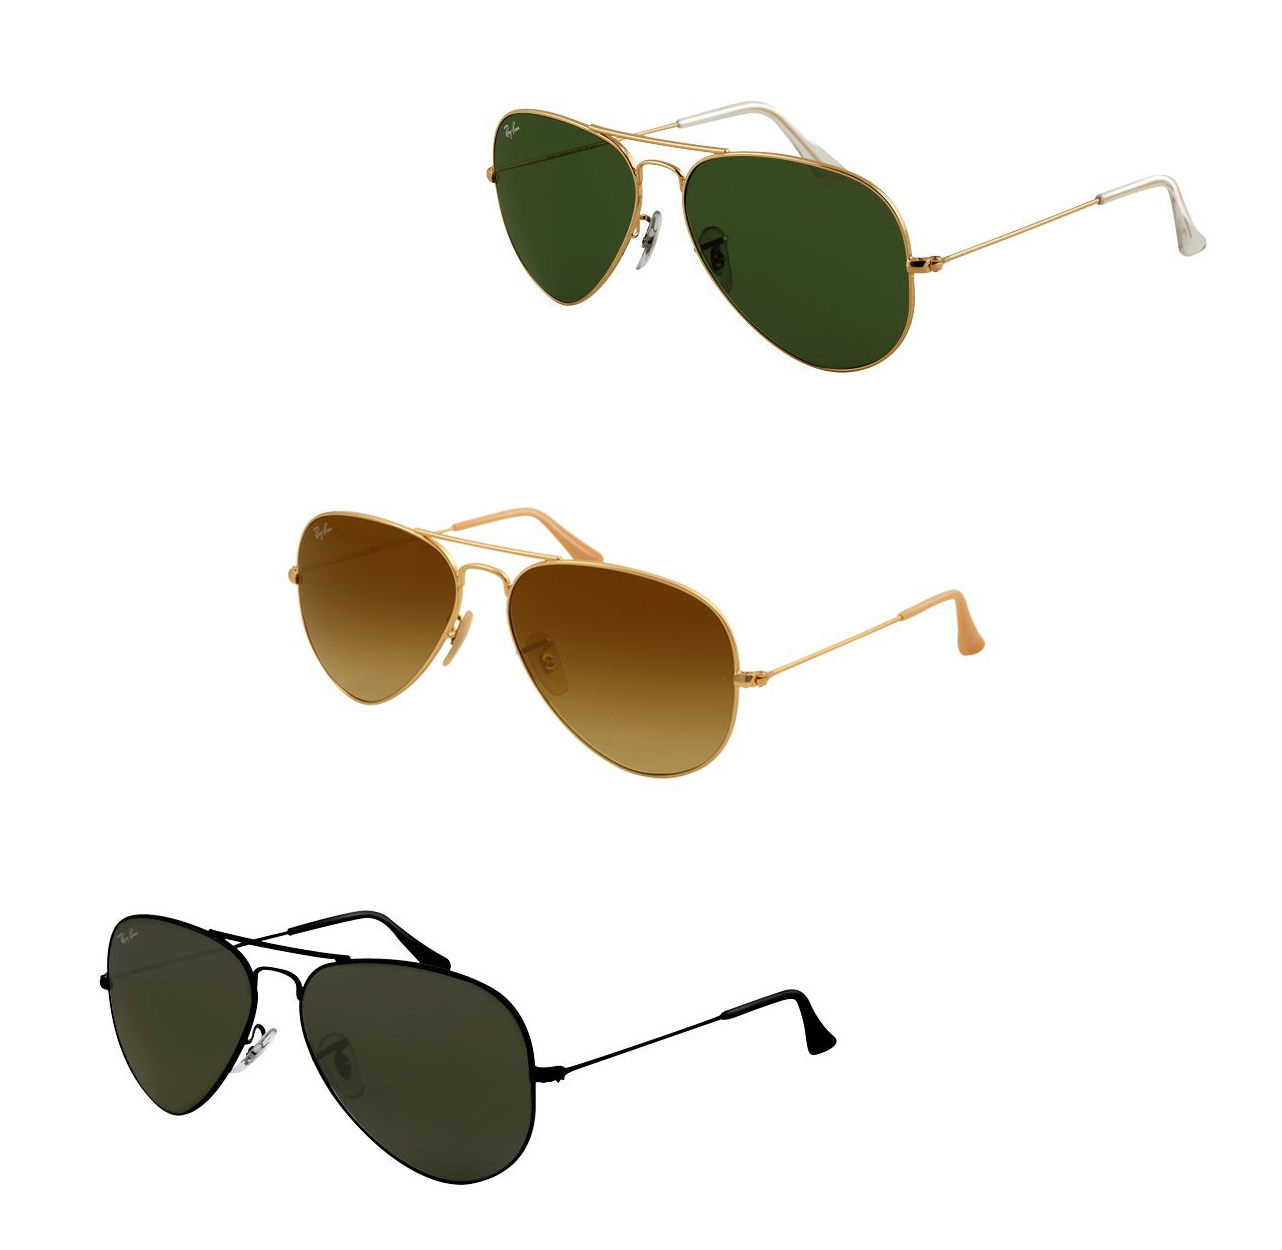 430d4a914dca2 Ray-Ban RB3025 Aviator Large Metal Sunglasses - 86 Models